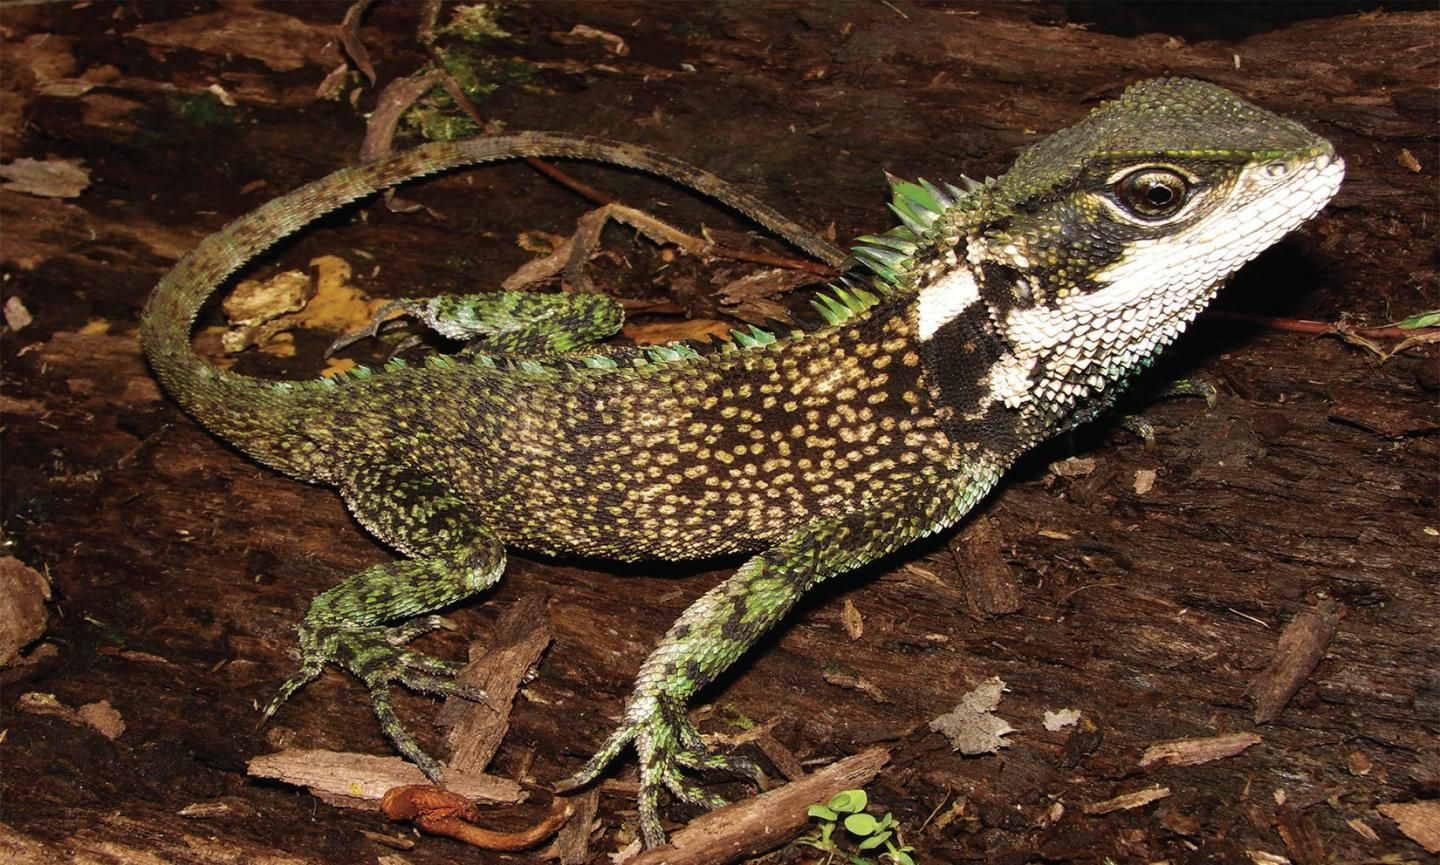 Enyalioides sophiarothschildae, one of three new species discovered in the Andes